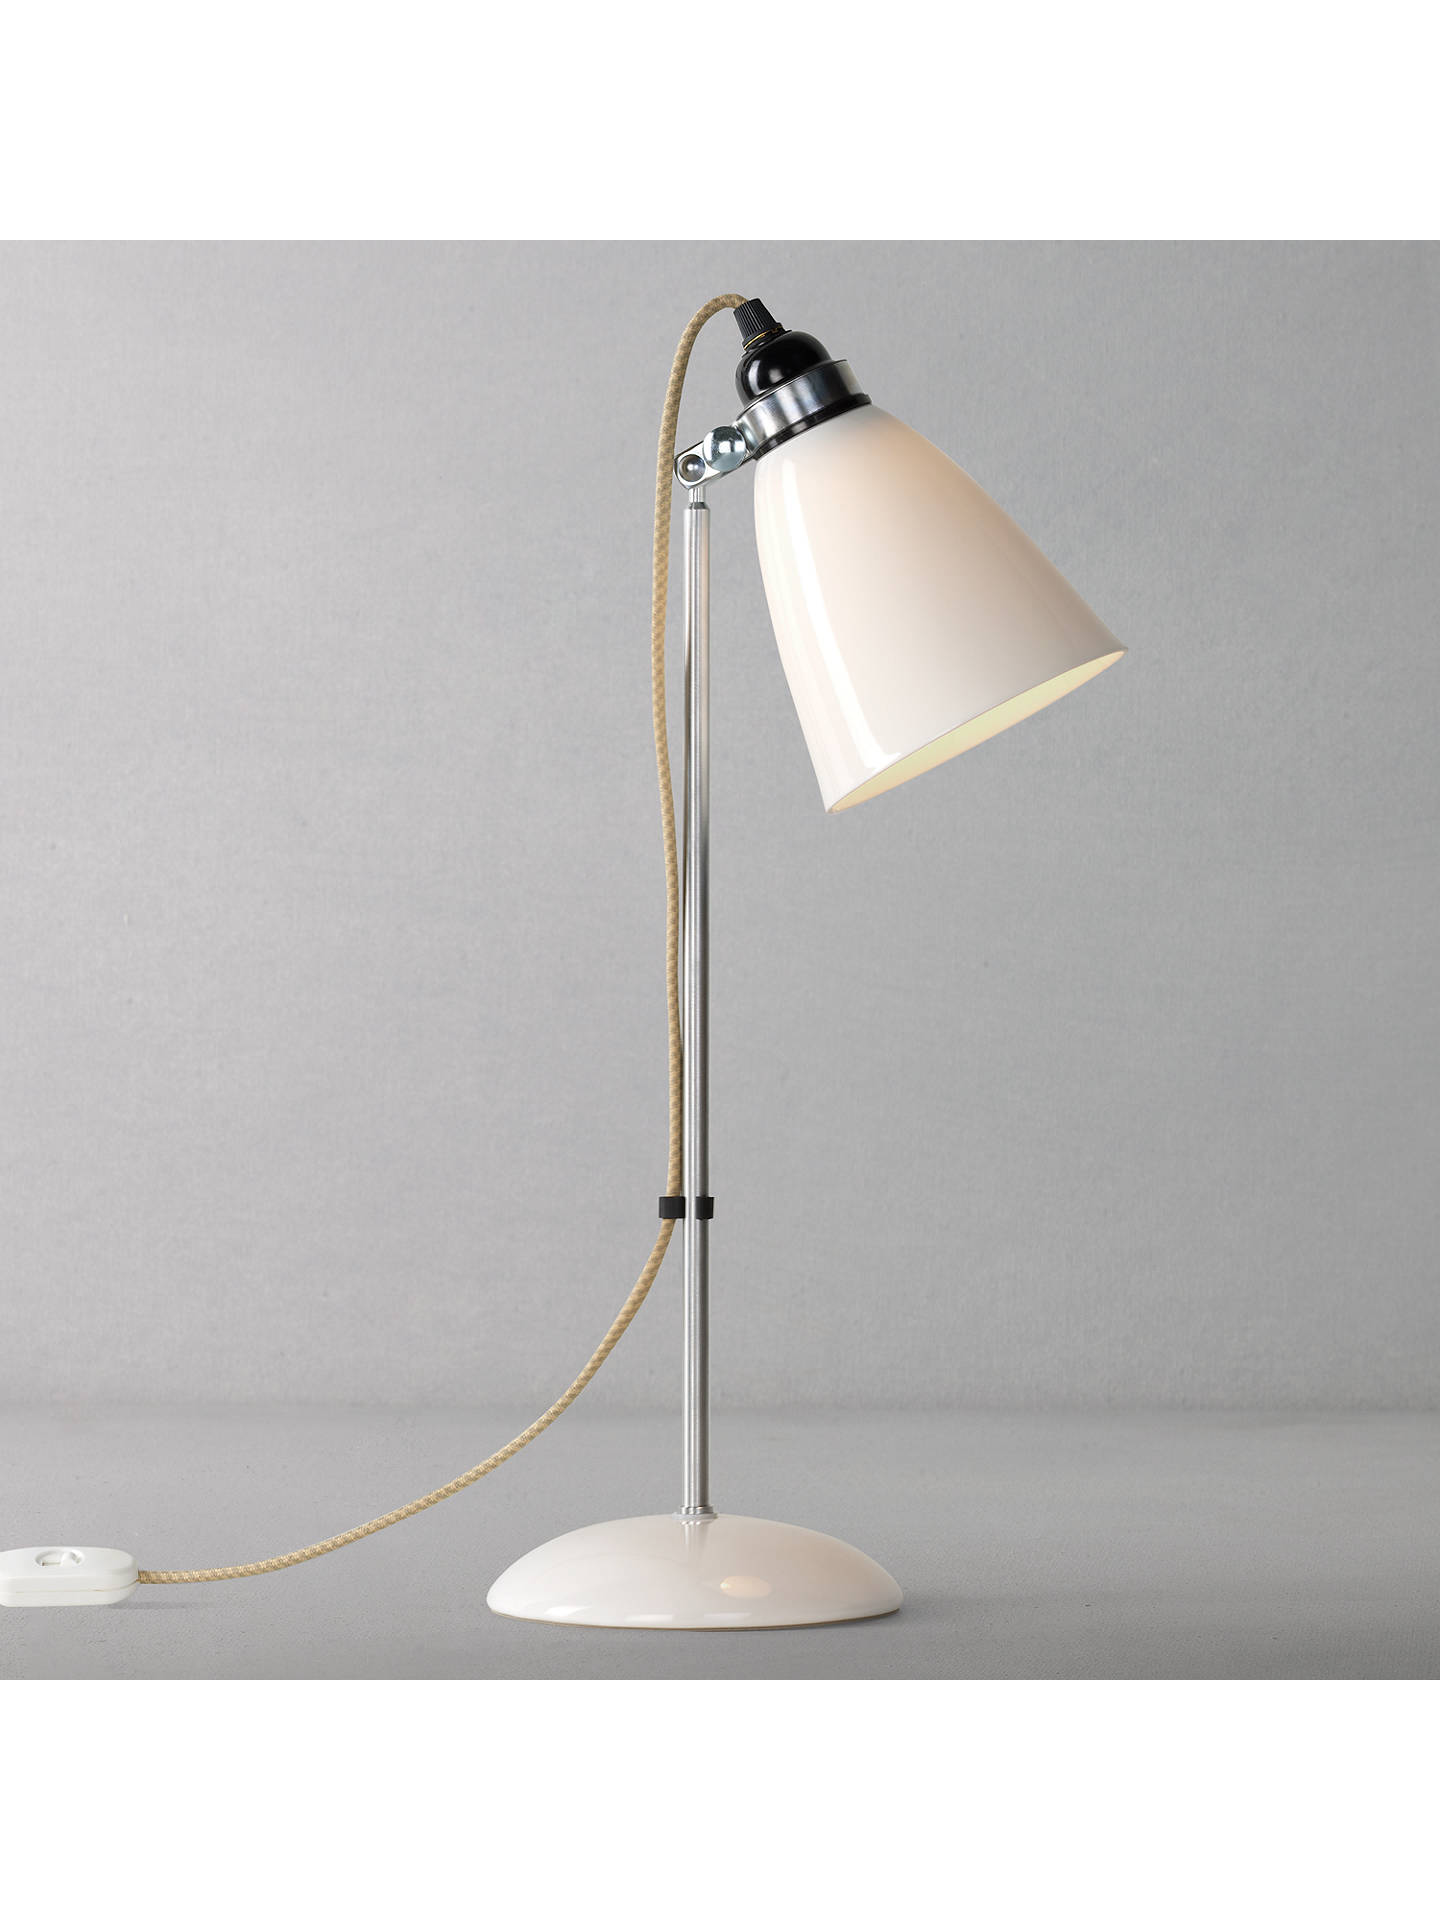 BuyOriginal BTC Hector Desk Lamp, FT198 Online at johnlewis.com